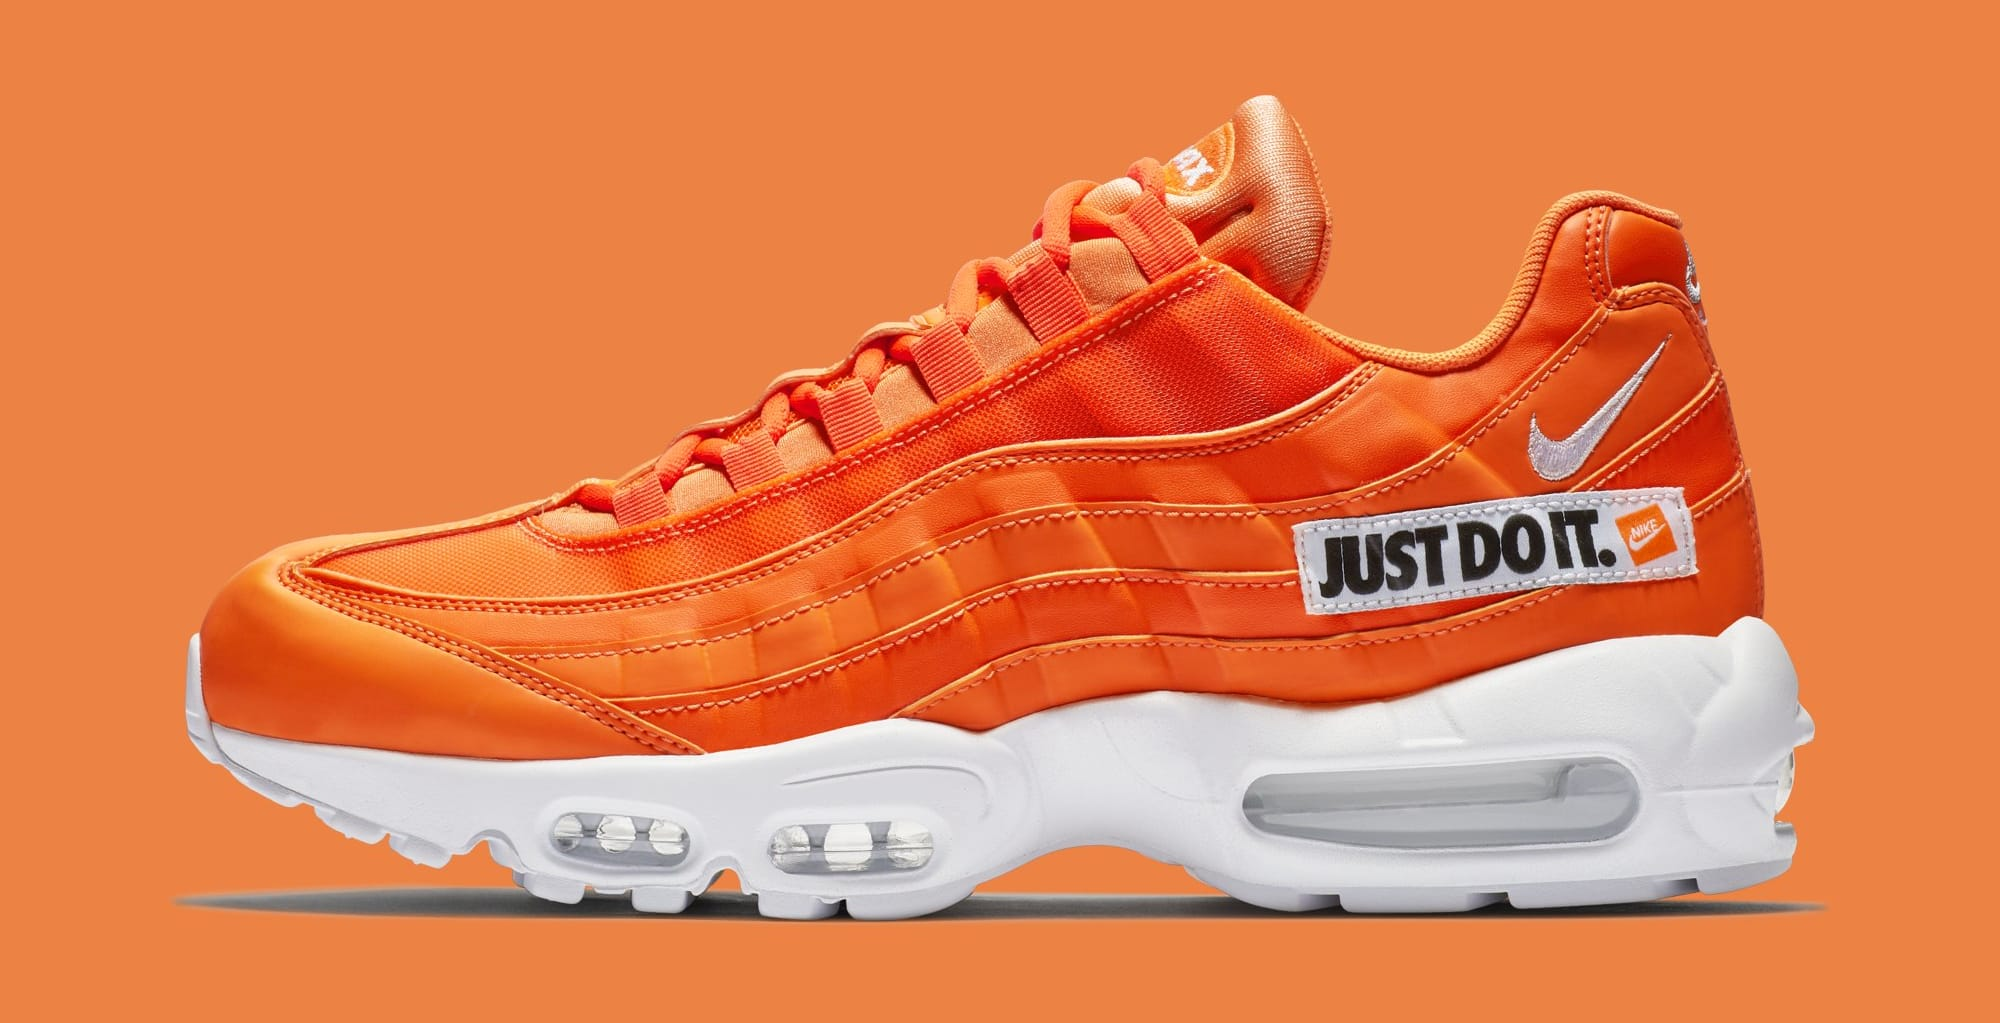 info for 3dc3f 789a7 Nike Air Max 95 Just Do It AV6246-800 (Lateral)